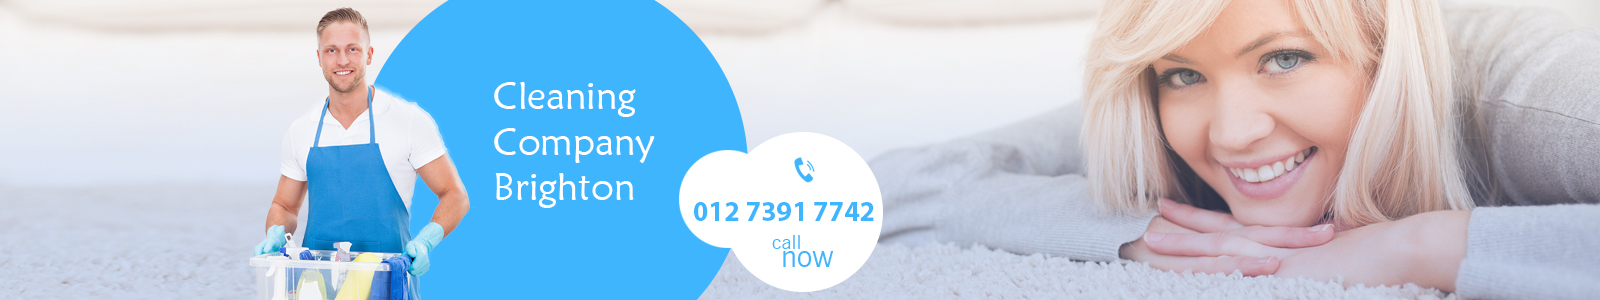 cleaning-company-brighton